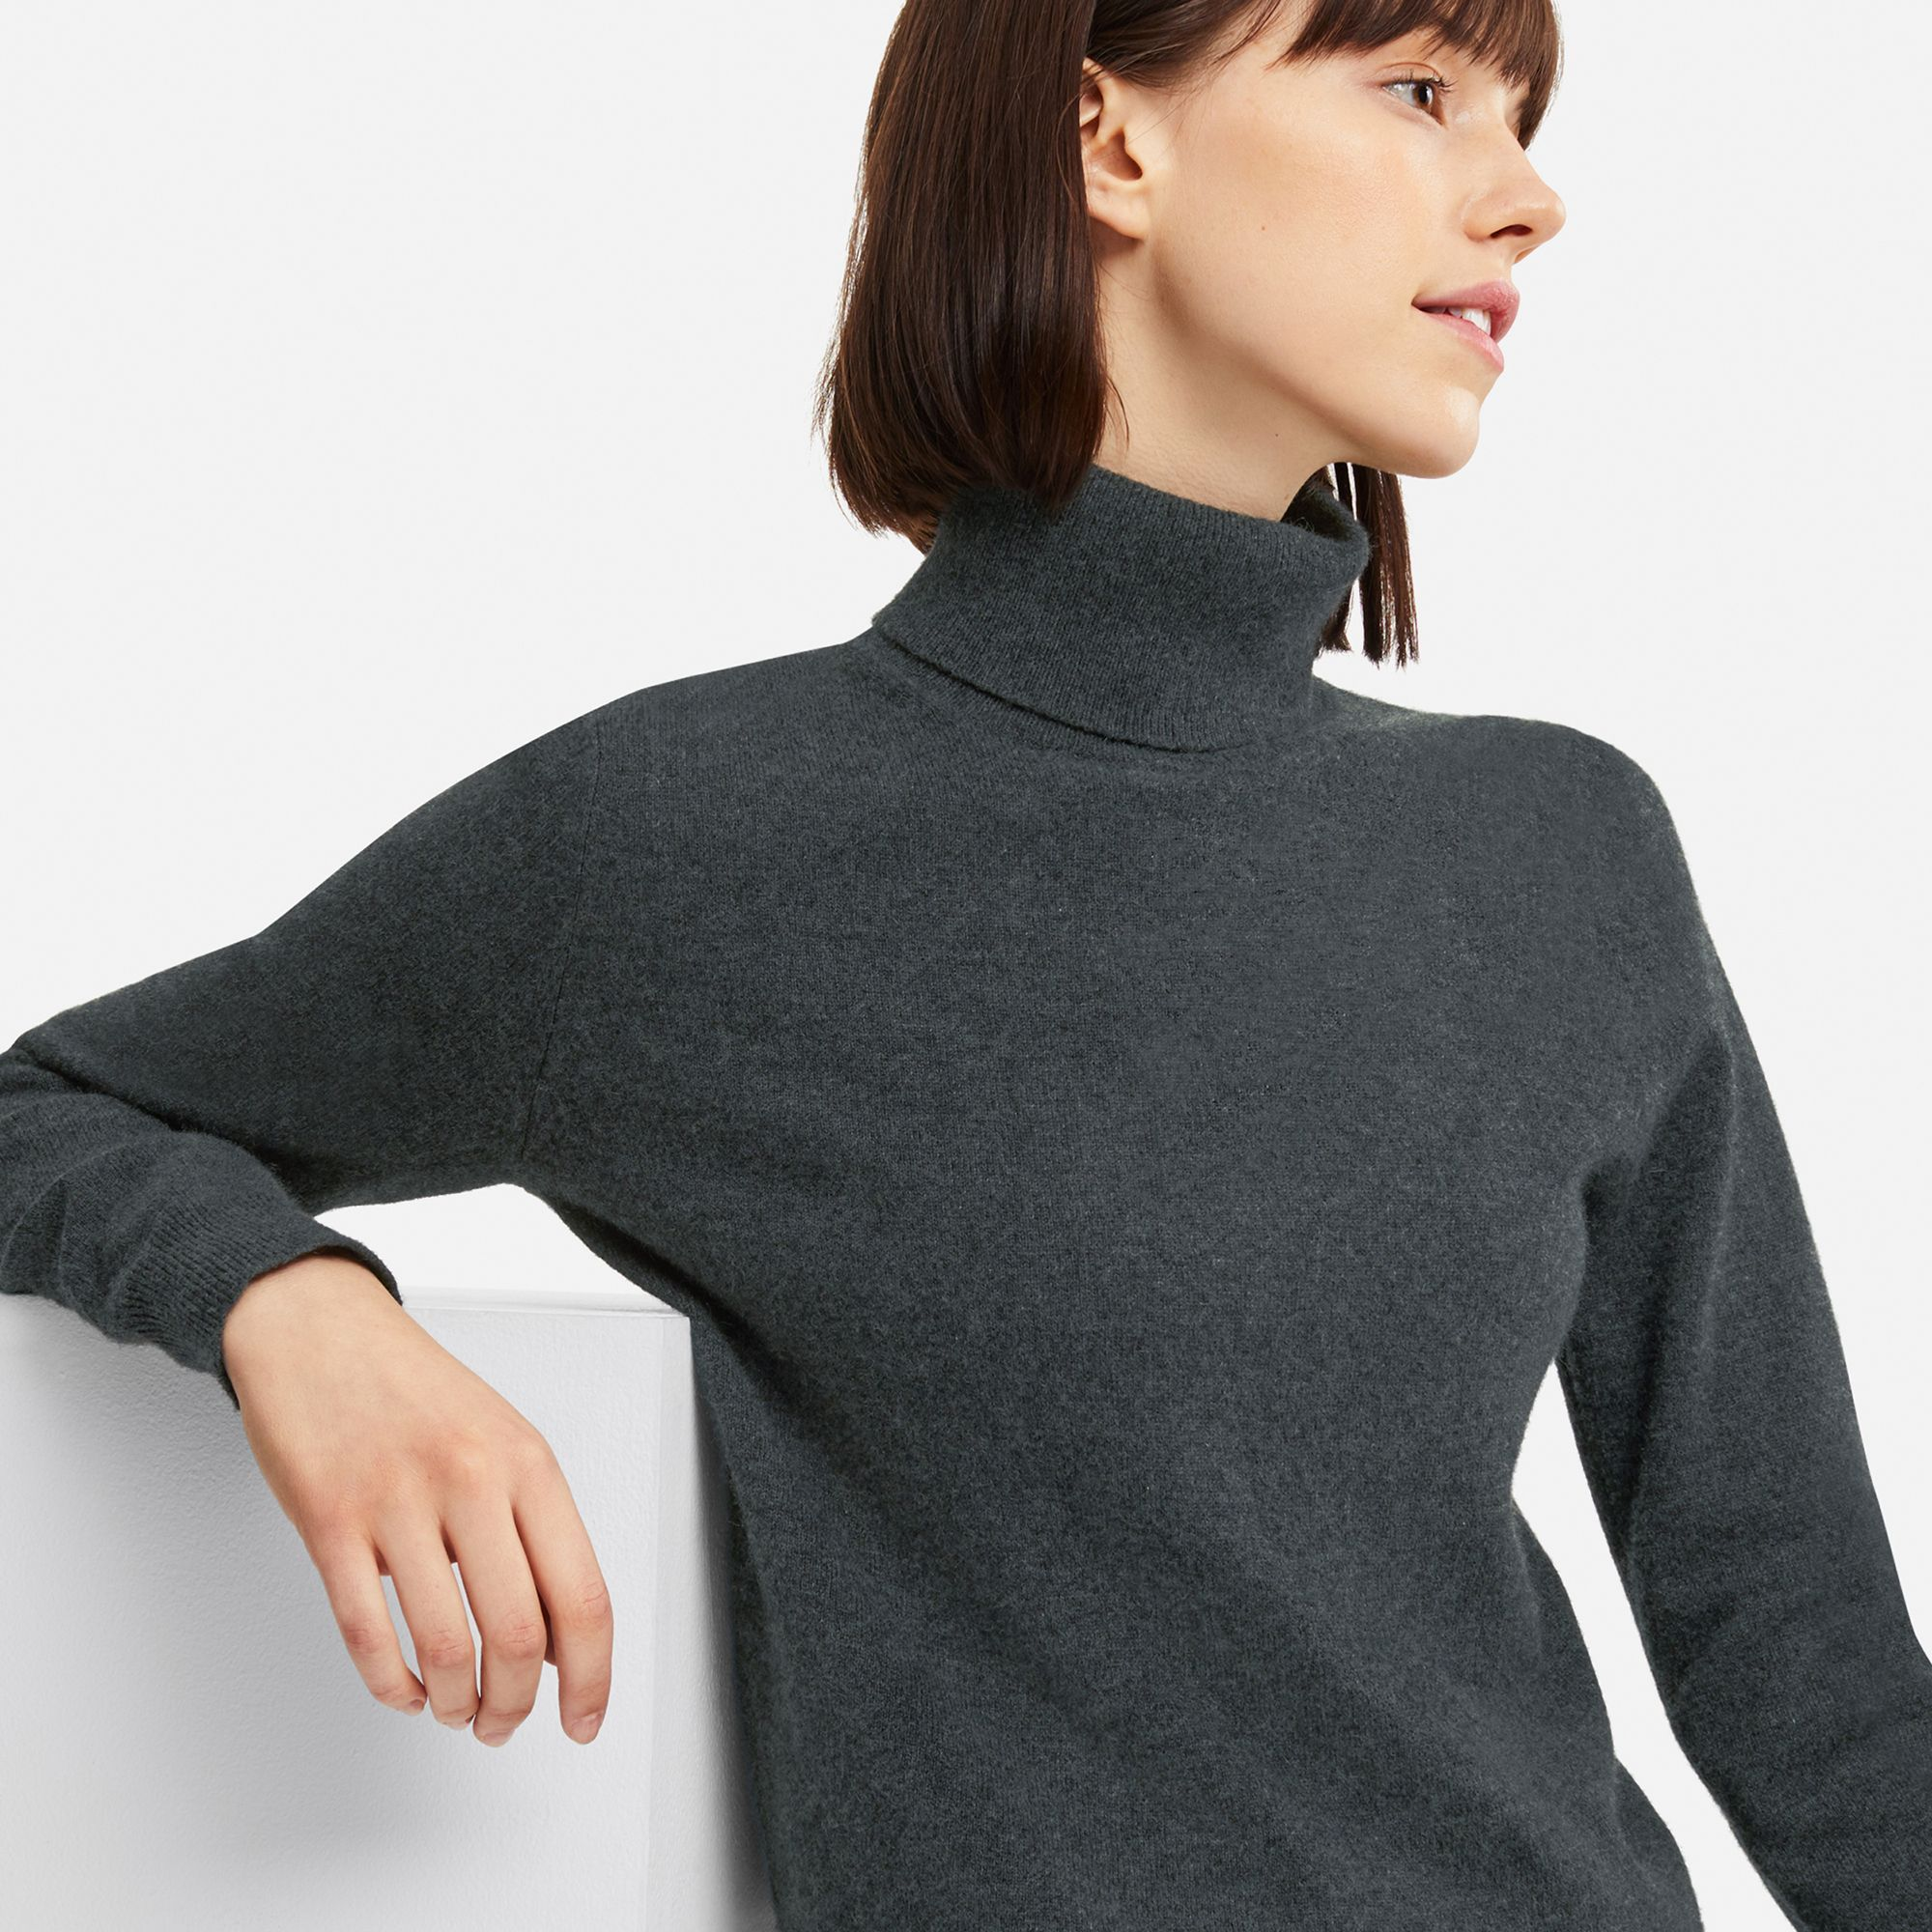 BlingGlri Womens high Collar Ribbed Sweater Pullover Cashmere Knit Sweatshirt